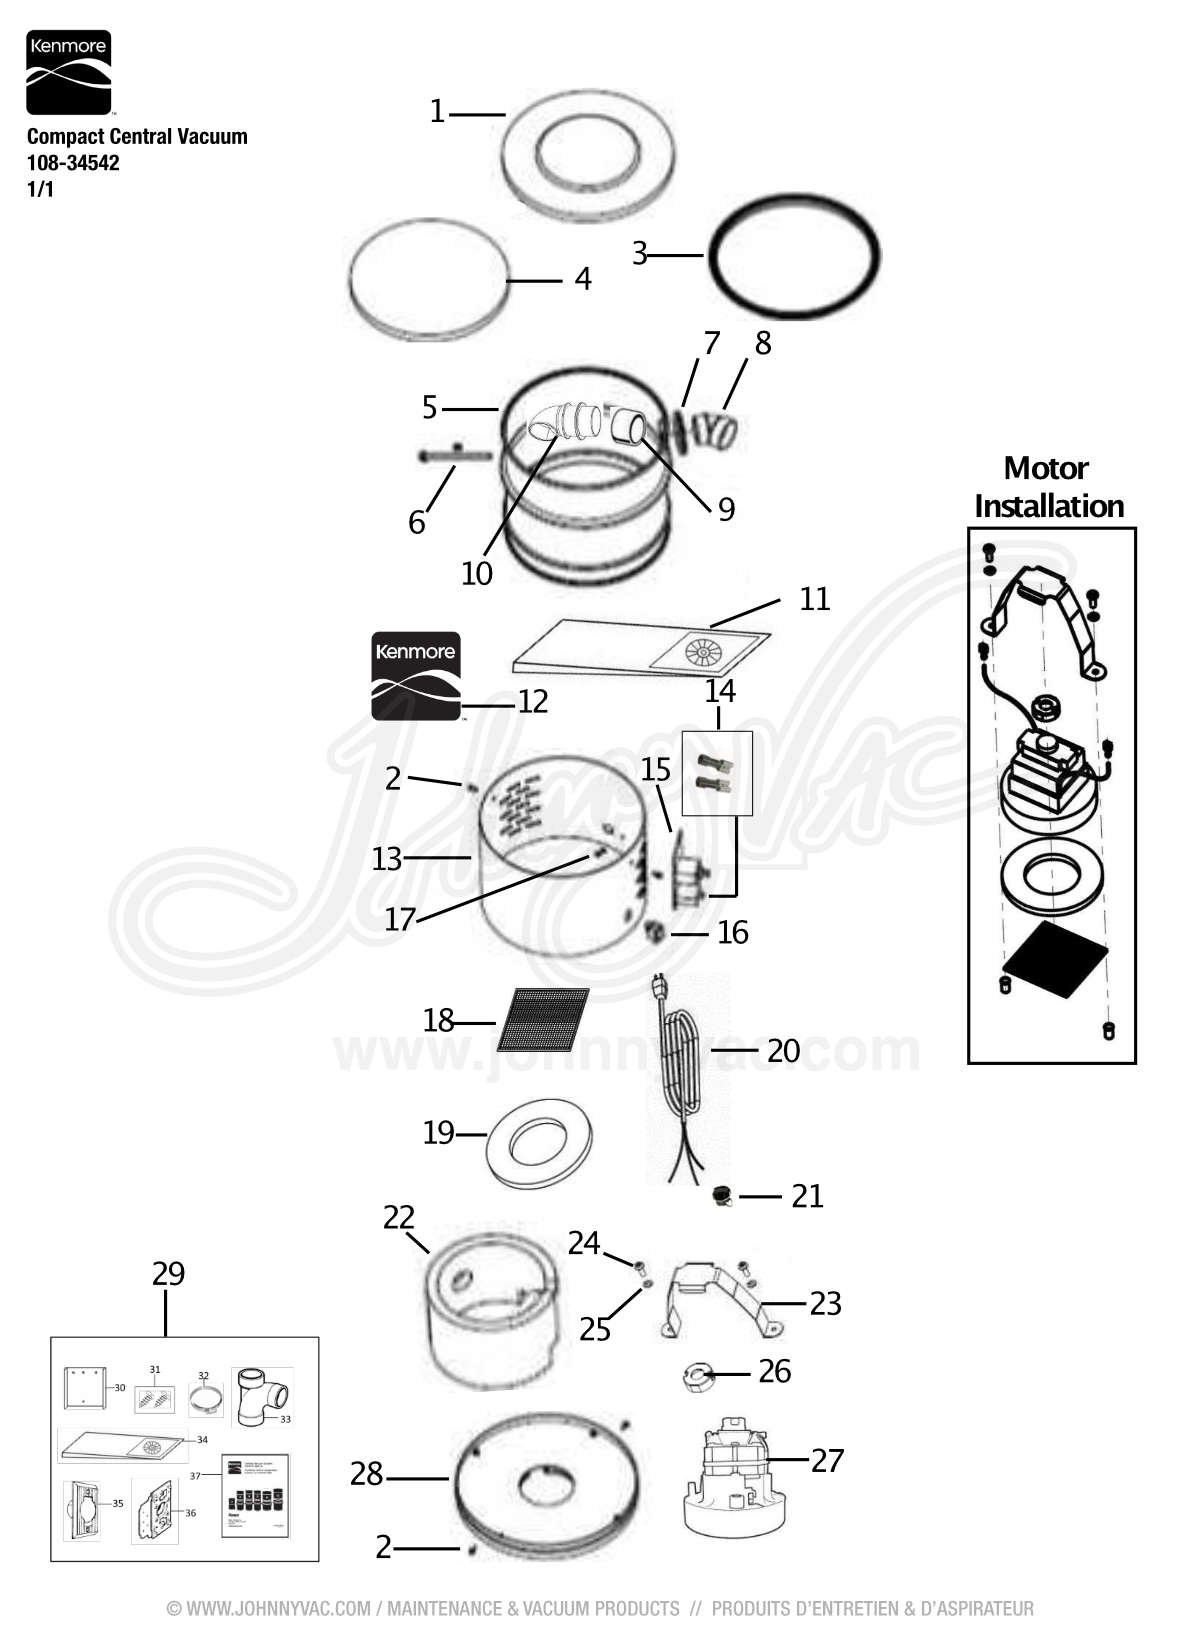 vacuum schematic (exploded view) for kenmore compact central vacuum  108-34542, model